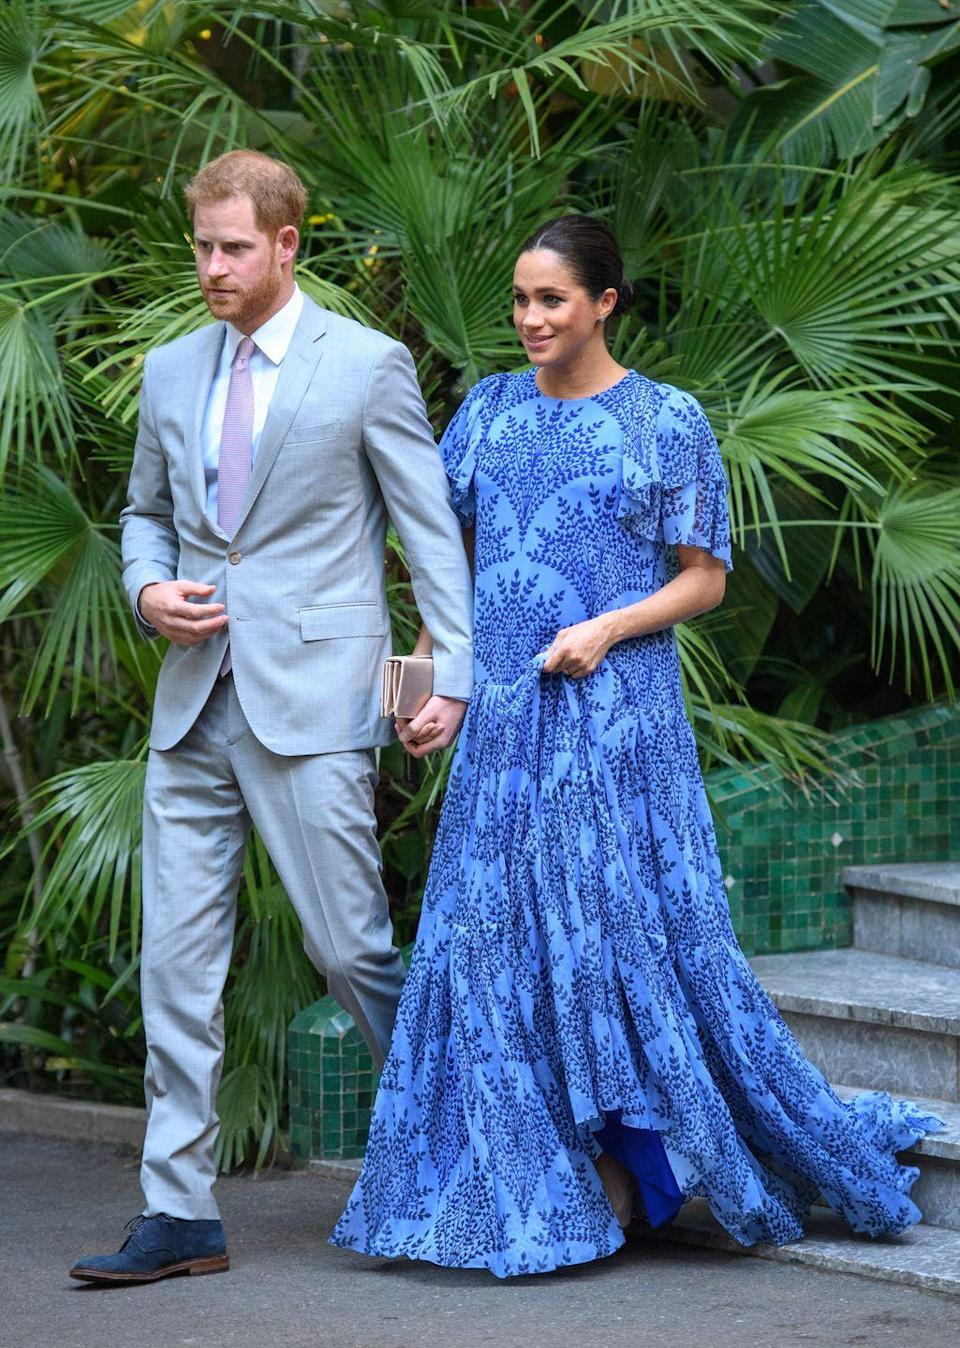 <p>The Duke and Duchess of Sussex look stylish as they meet with King Mohammed VI of Morocco in Rabat, Morocco. </p>